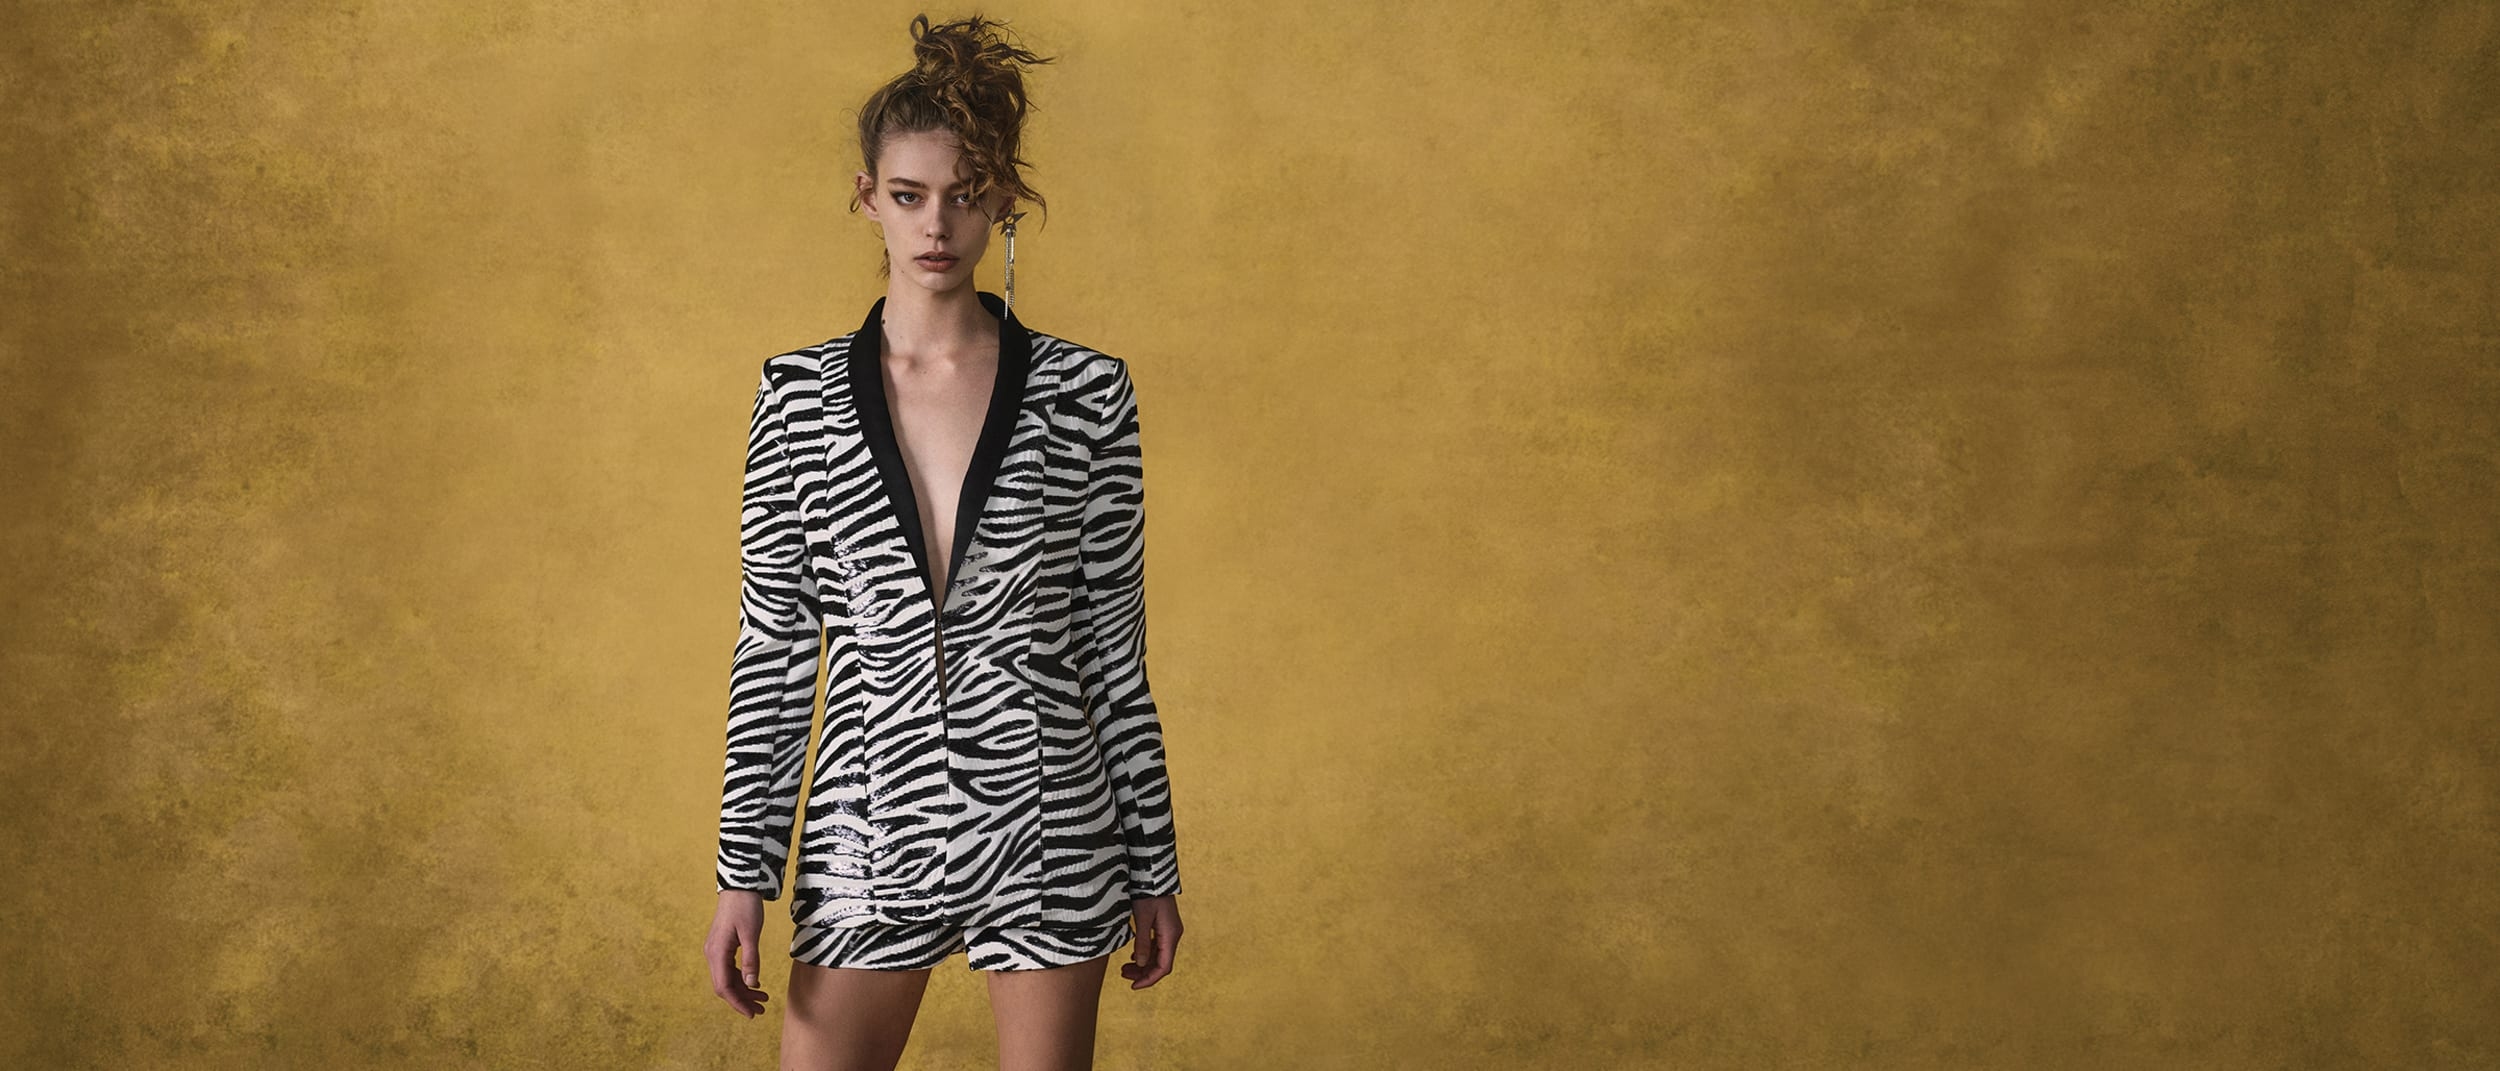 sass & bide: find your perfect party look